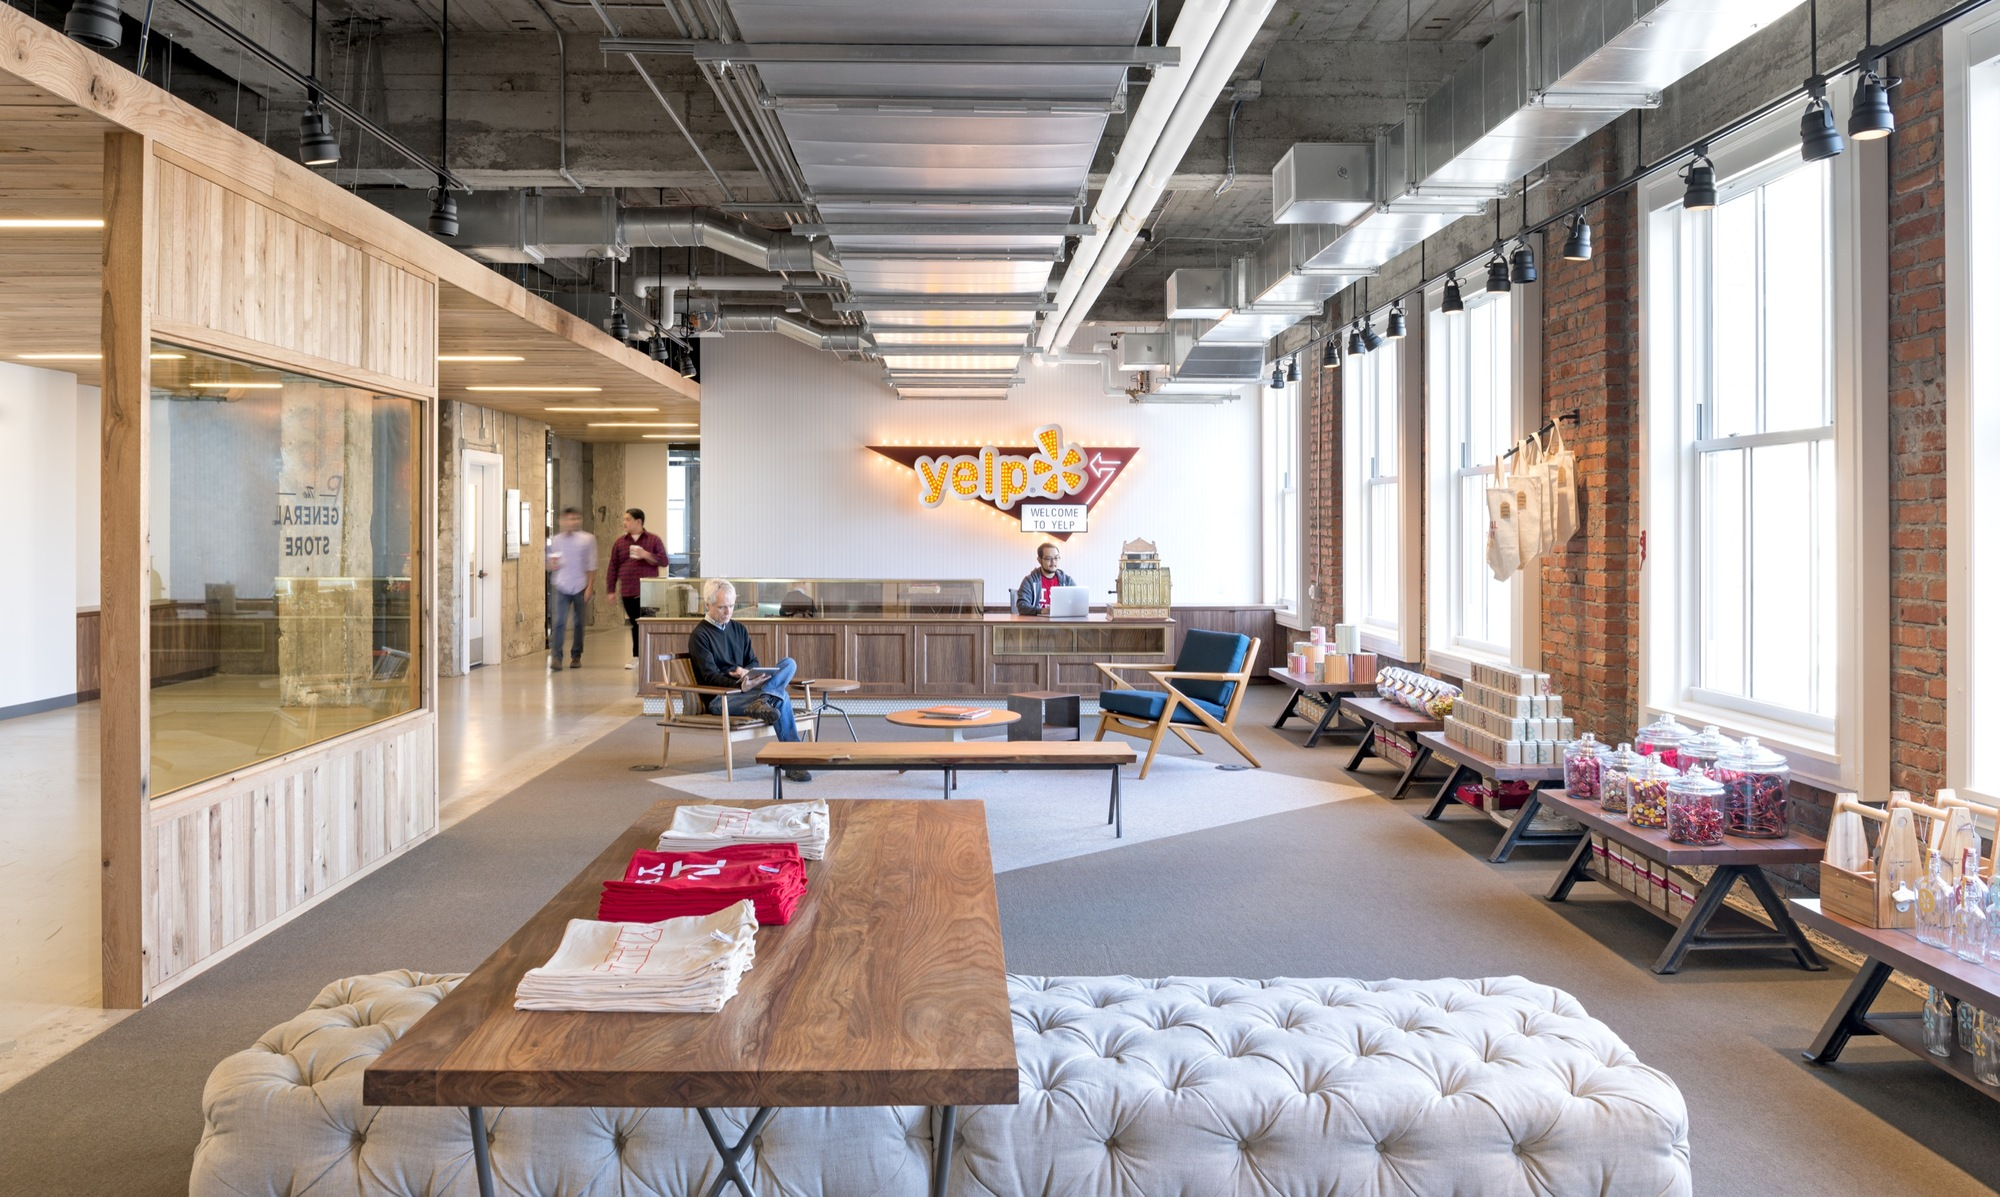 Exposed Brick Walls & Concrete Define The New Yelp Headquarters